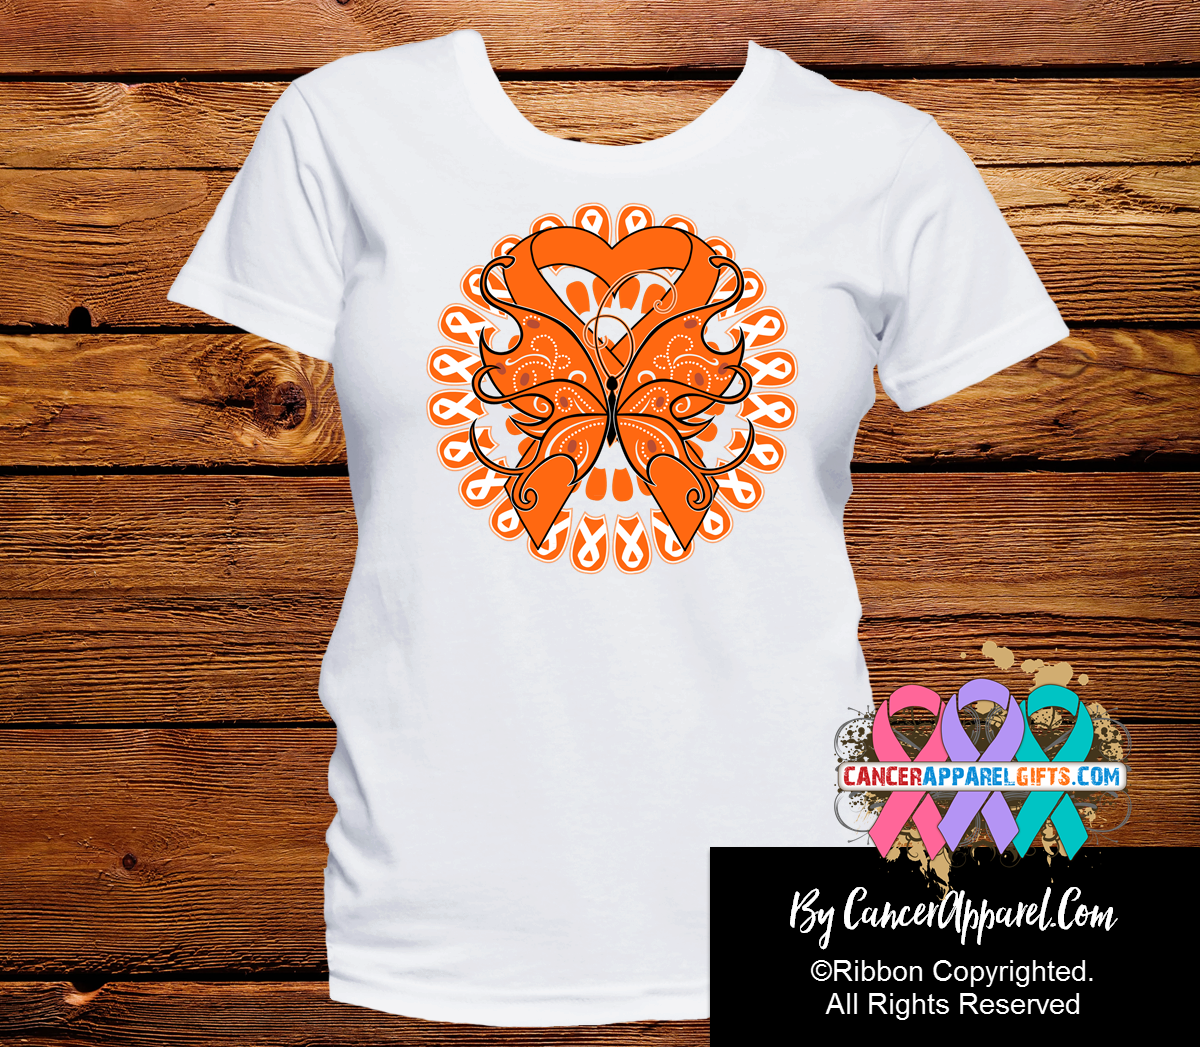 Kidney Cancer Stunning Butterfly Shirts - Cancer Apparel and Gifts